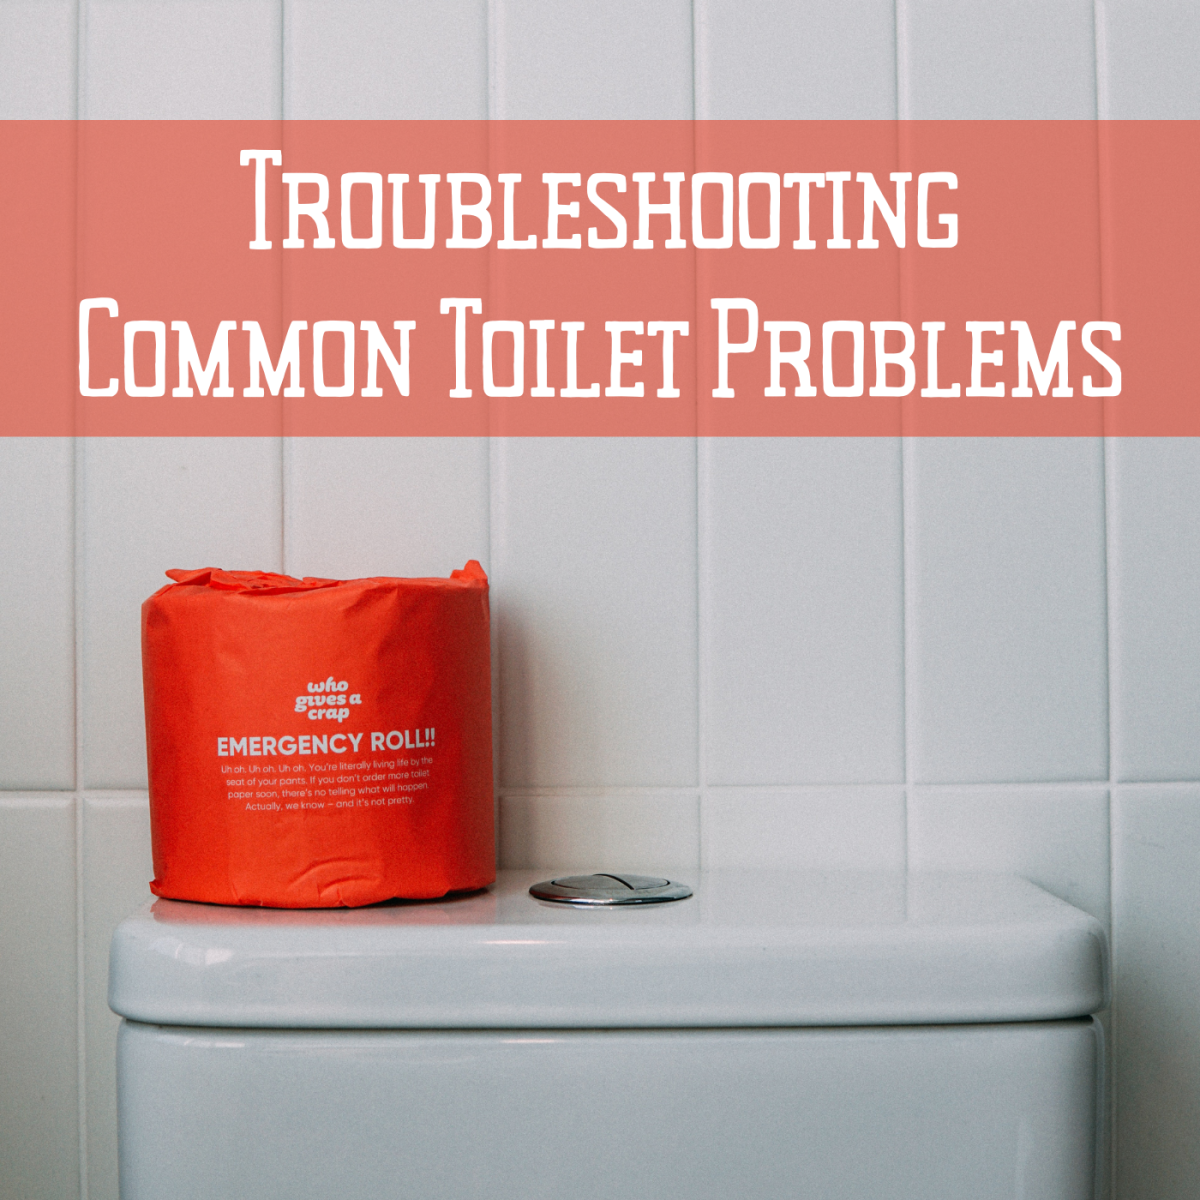 Learn how to identify and fix some common toilet issues, from leaks to clogs.